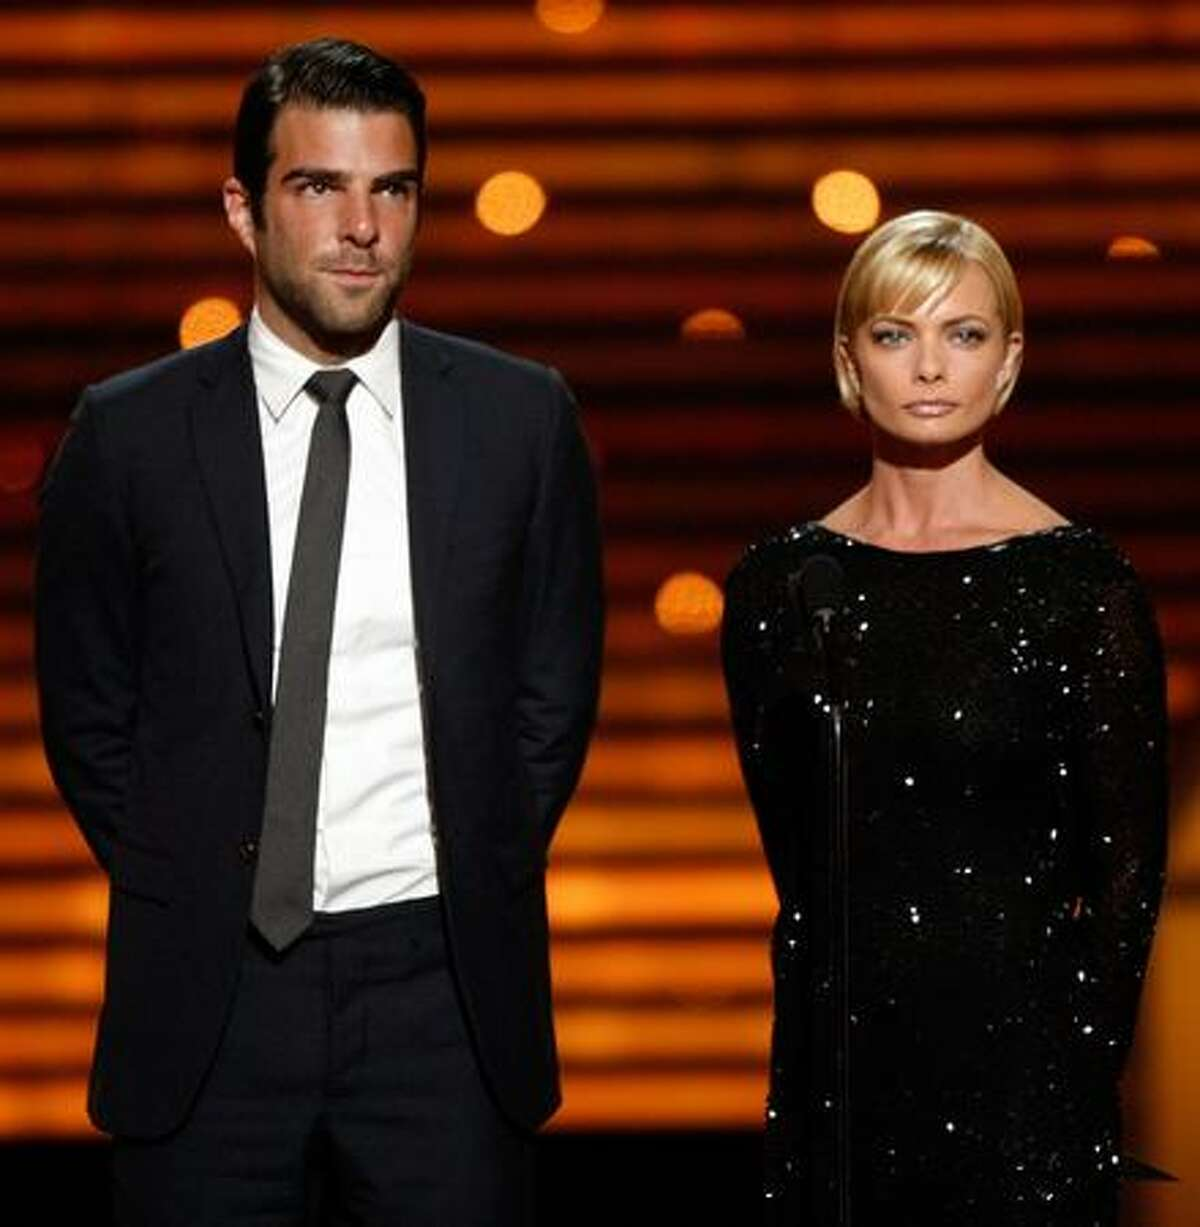 Actor Zachary Quinto (L) and actress Jaime Pressly speak onstage during the 2009 ESPY Awards held at Nokia Theatre LA Live in Los Angeles, California.